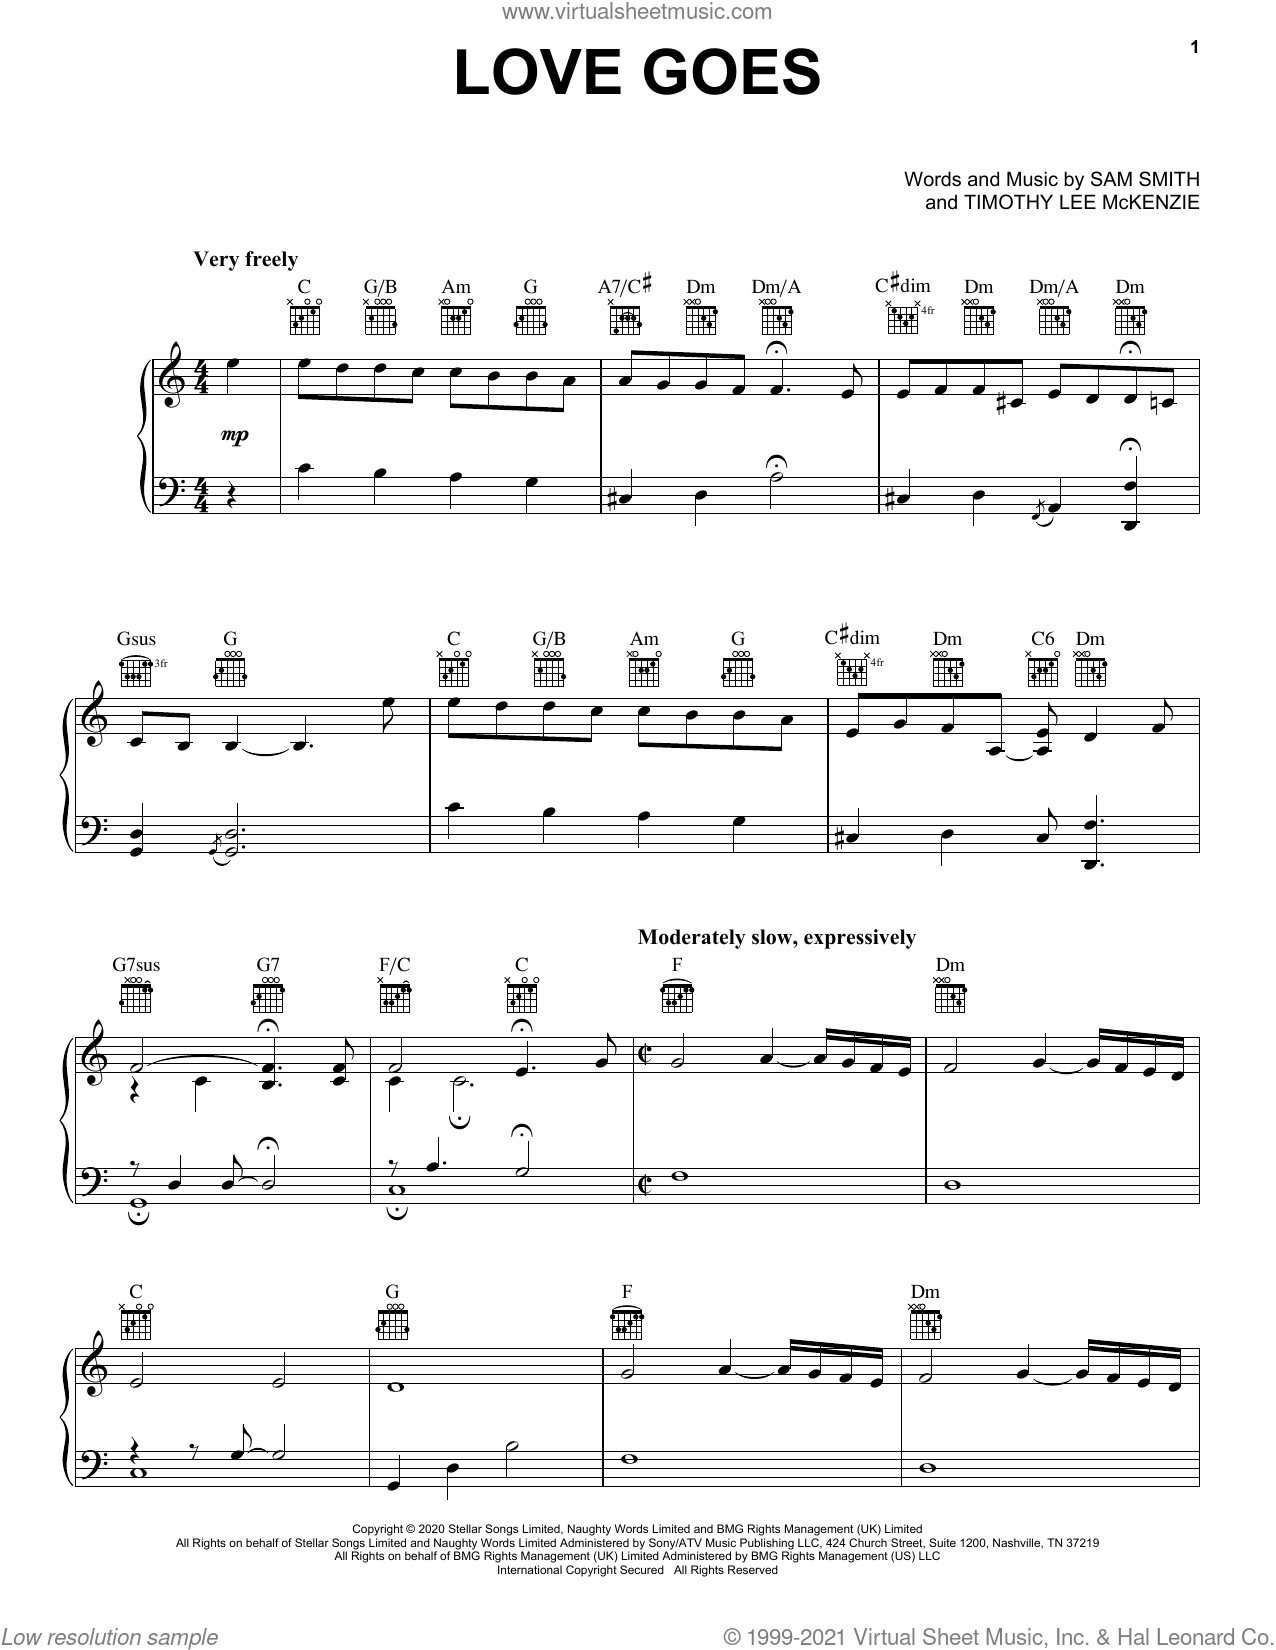 Love Goes (feat. Labrinth) sheet music for voice, piano or guitar by Sam Smith, Labrinth and Timothy Lee McKenzie, intermediate skill level